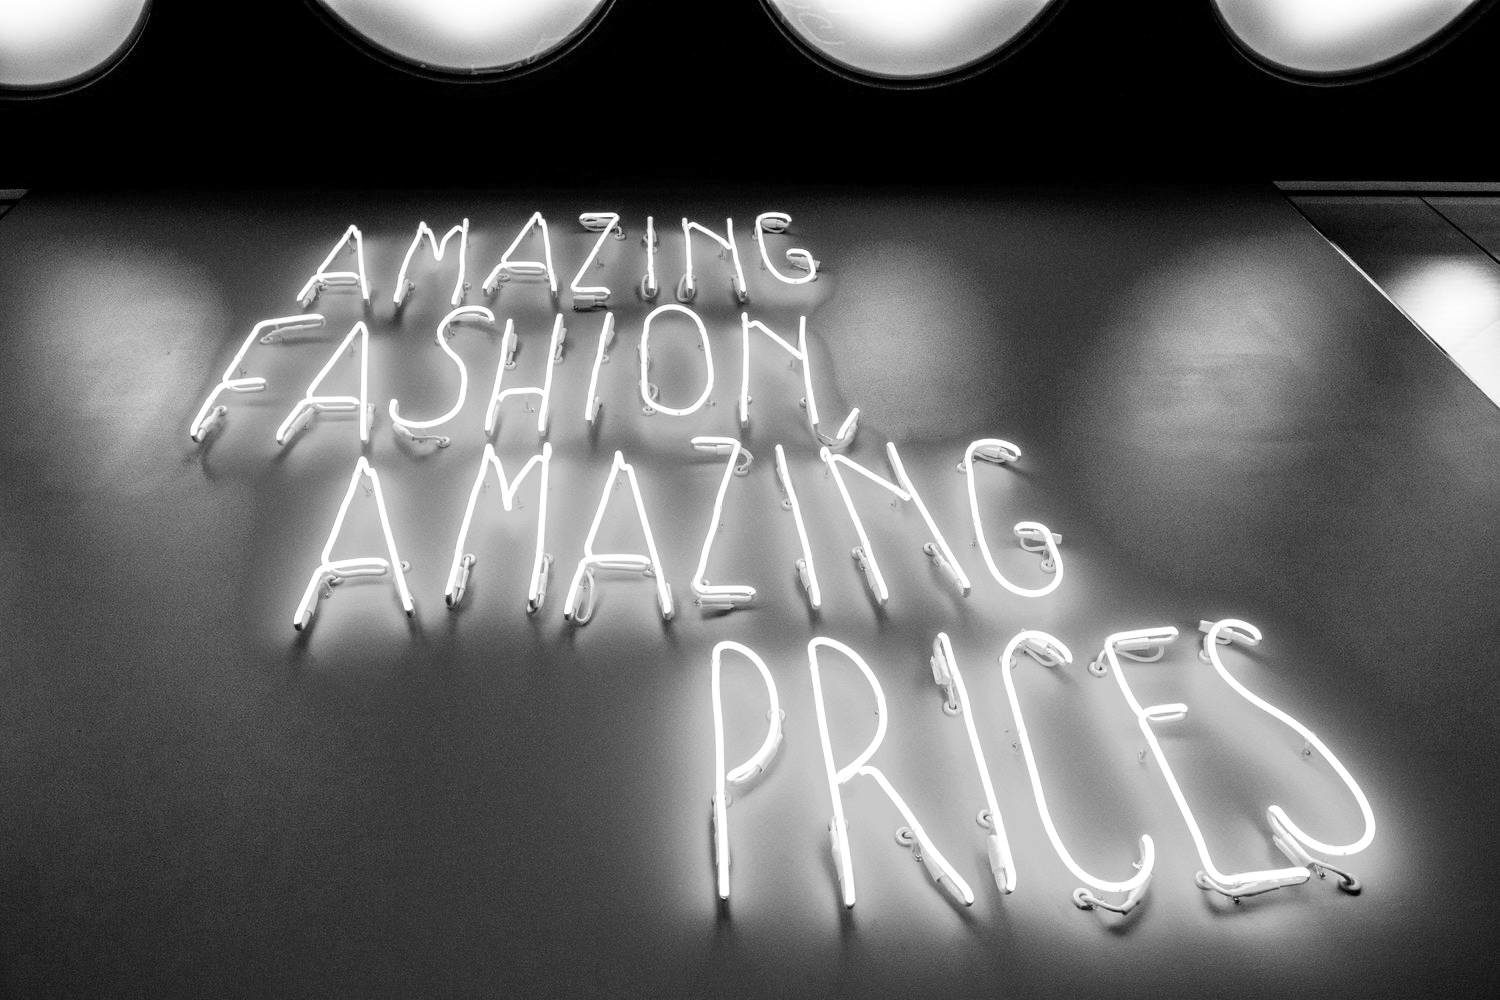 Amazing Fashion, Amazing Prices